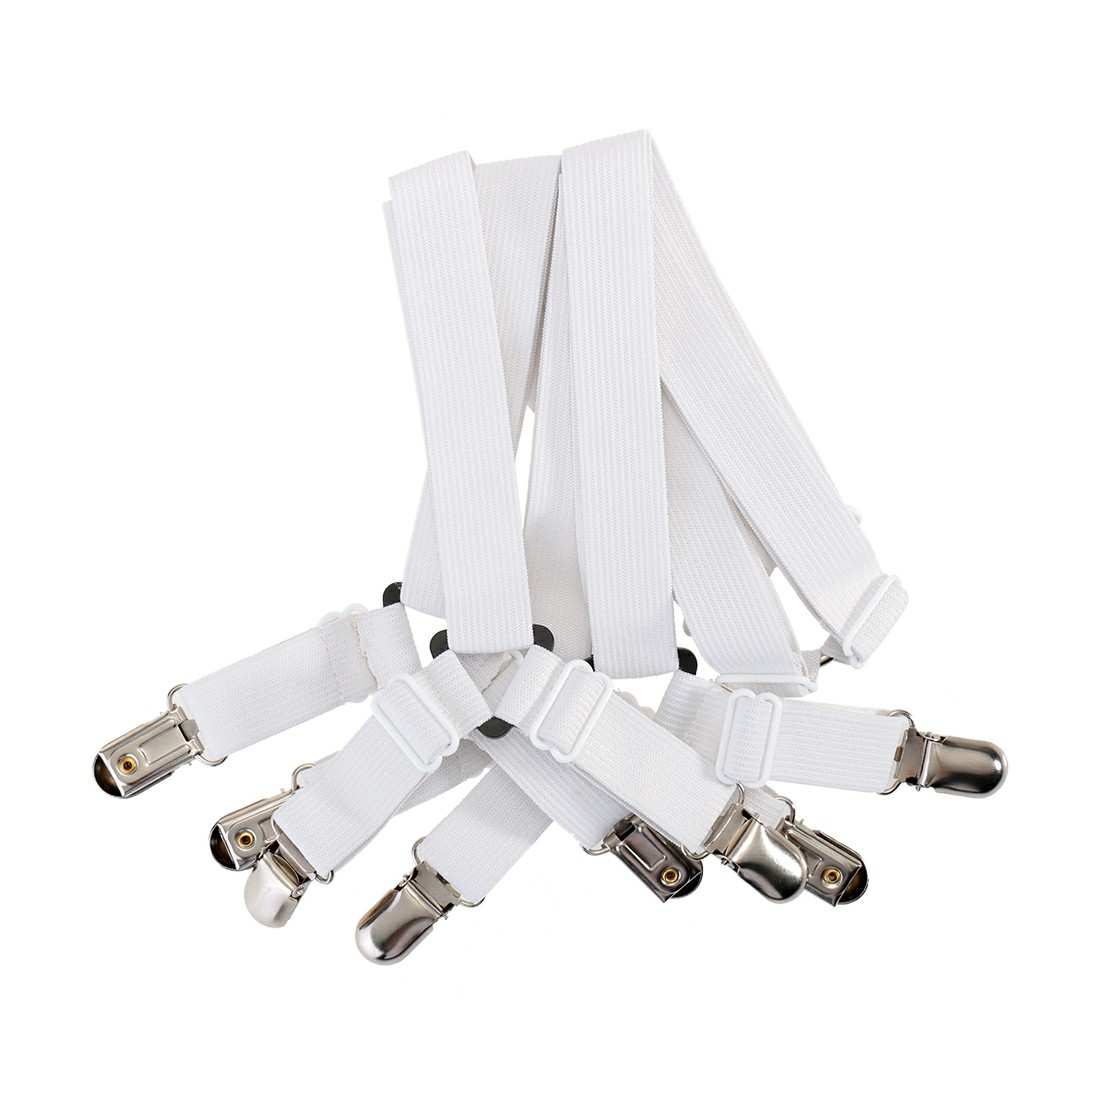 Triangle Sheet Straps Adjustable Bed Sheet Fastener Suspenders Grippers Corner Holder - White